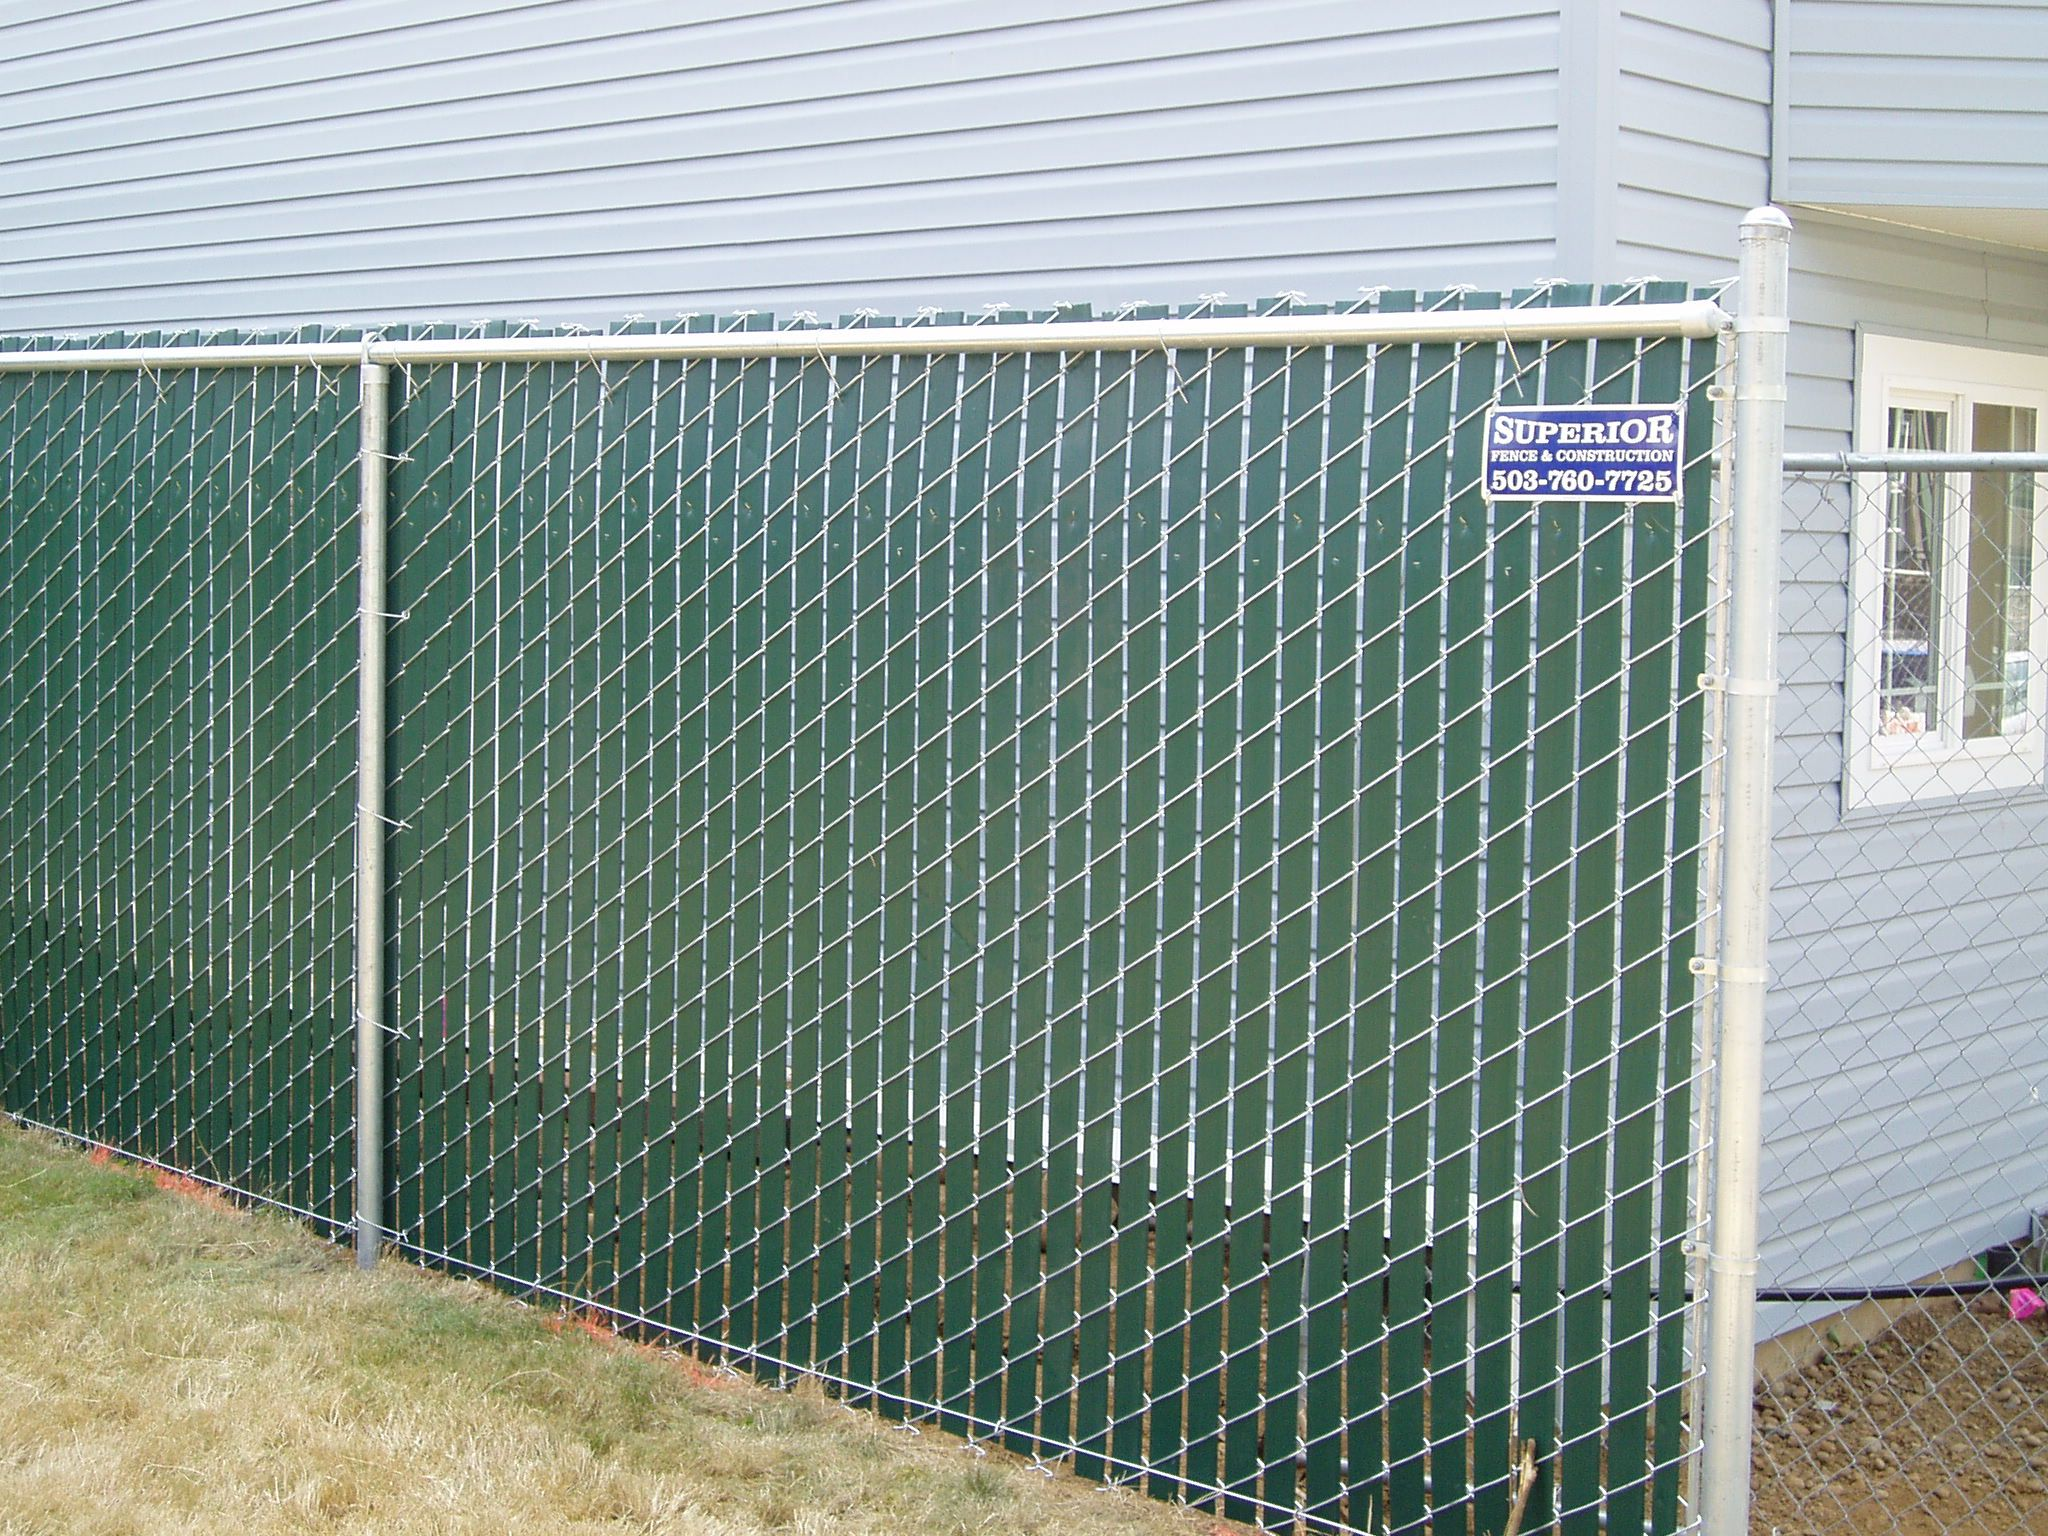 Exellent Chain Link Fence Slats Sold For Decorating